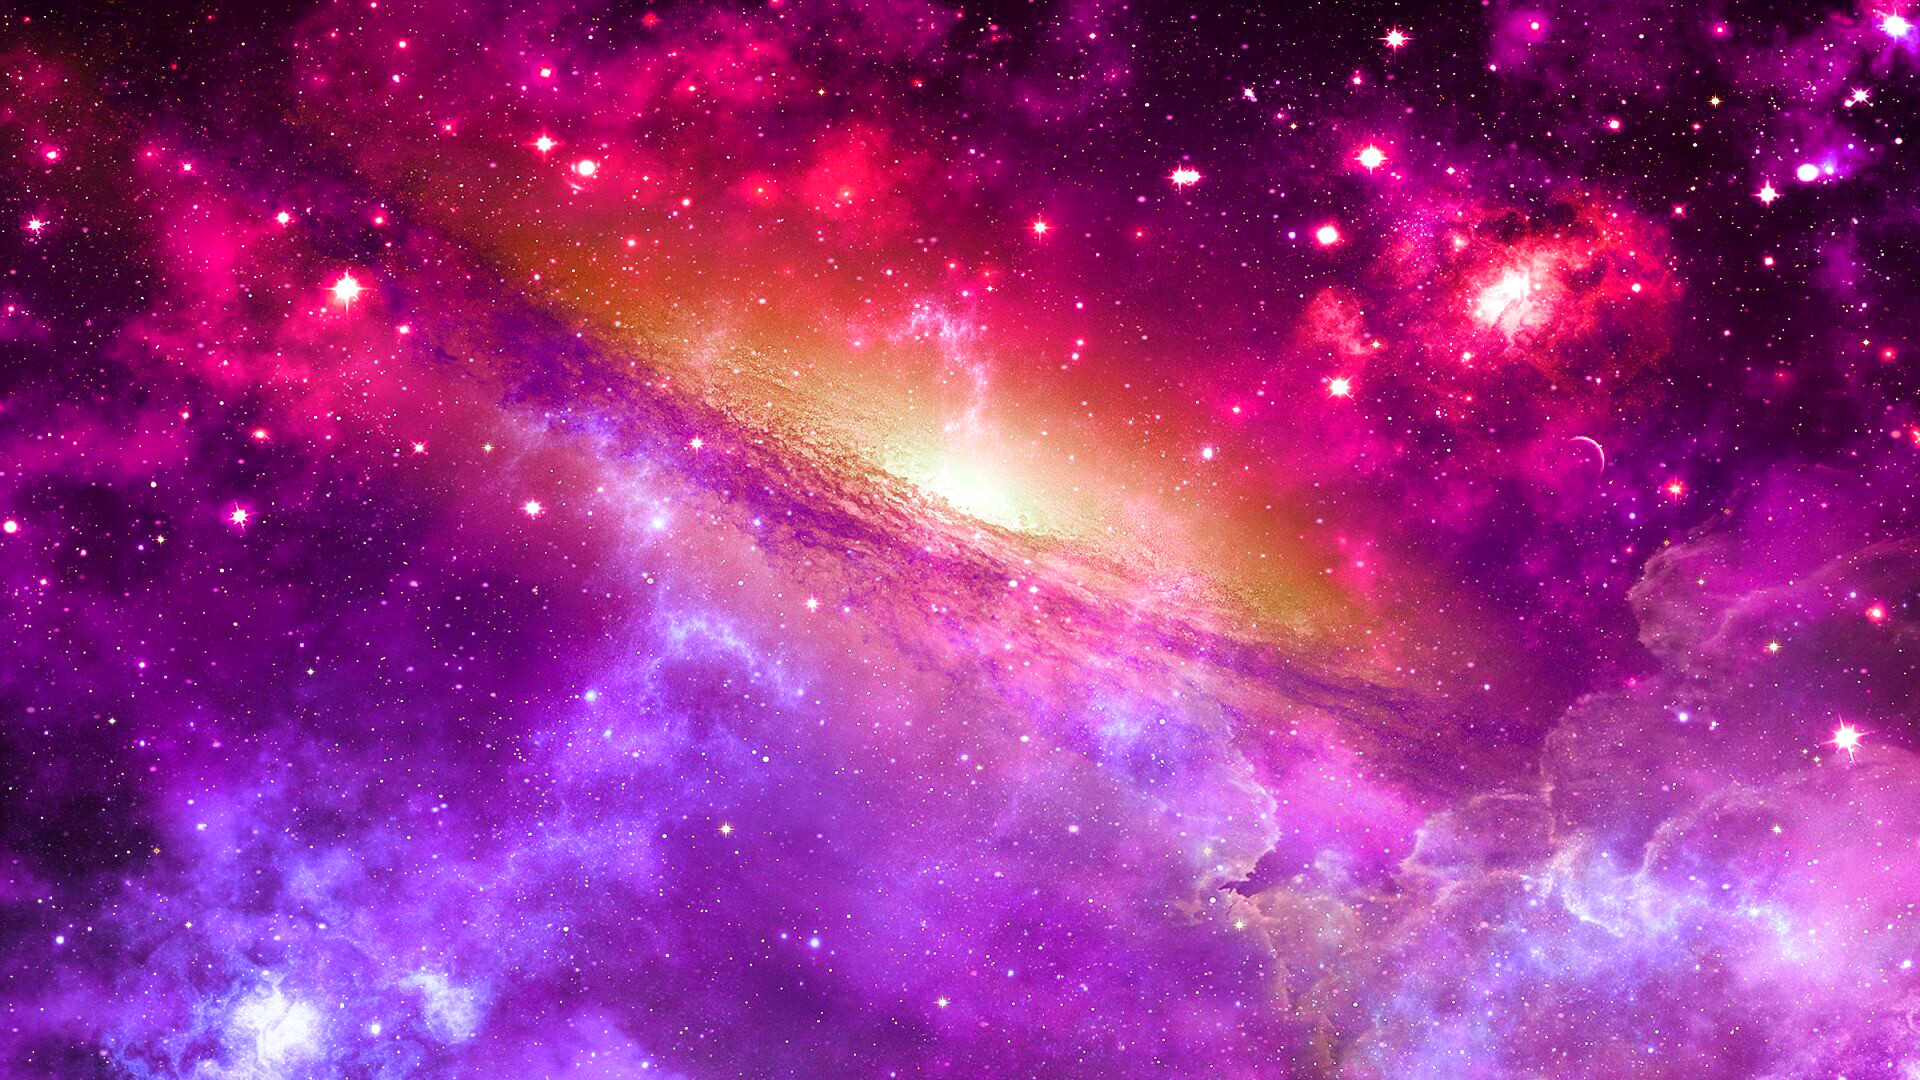 Colorful space wallpapers 73 images - Space wallpaper hd 1920x1080 ...